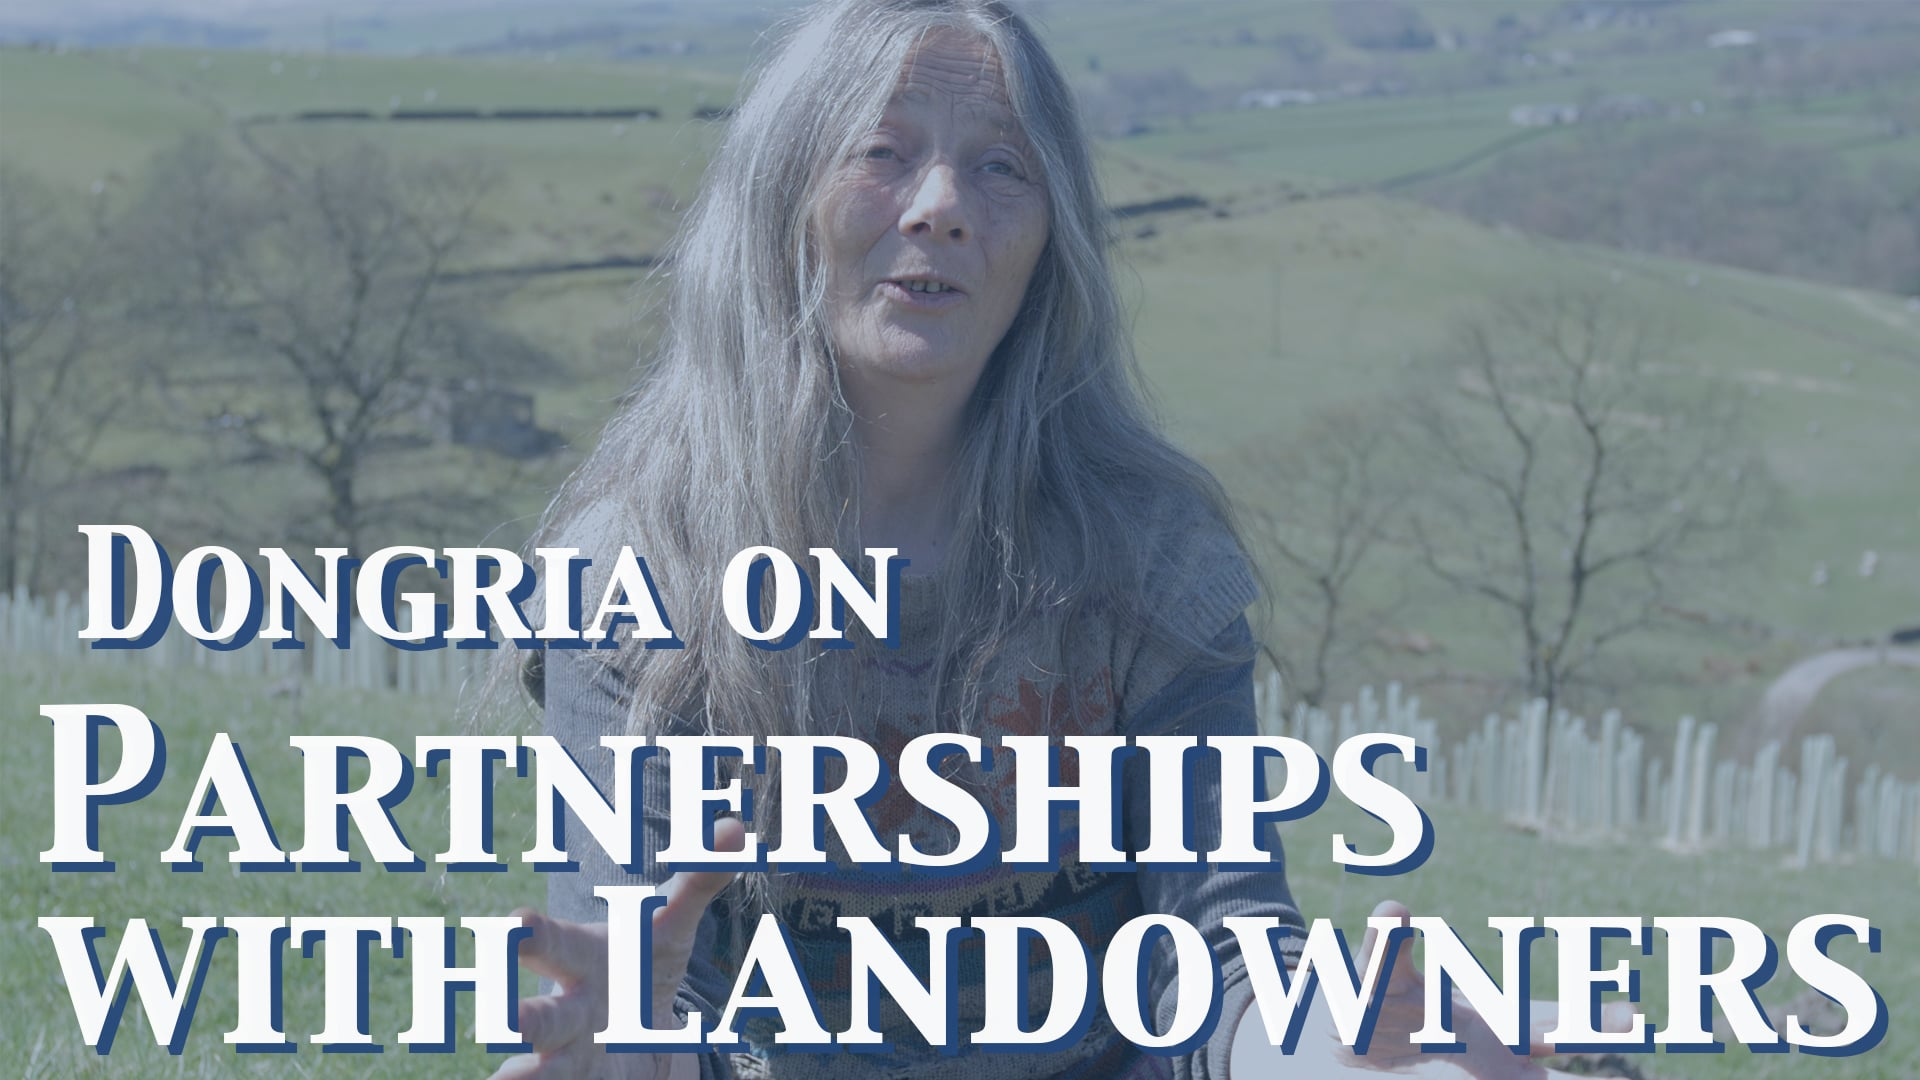 Dongria on Partnerships with Landowners